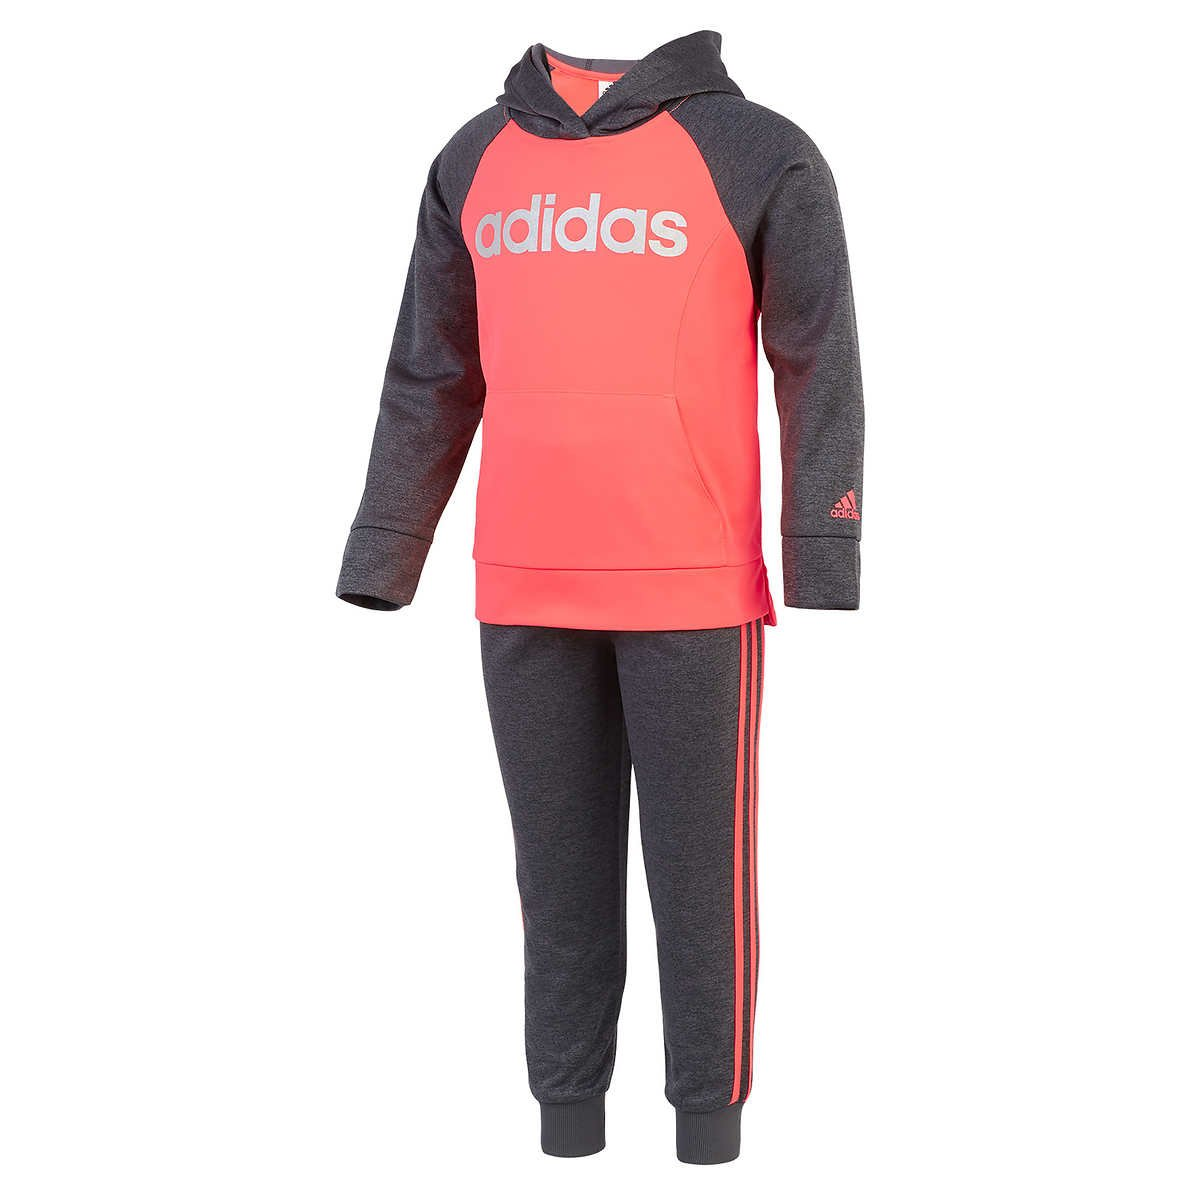 Adidas Girls Tricot Hoodie Jacket and Pant Set (3T, Heather Gray /Neon Pink)